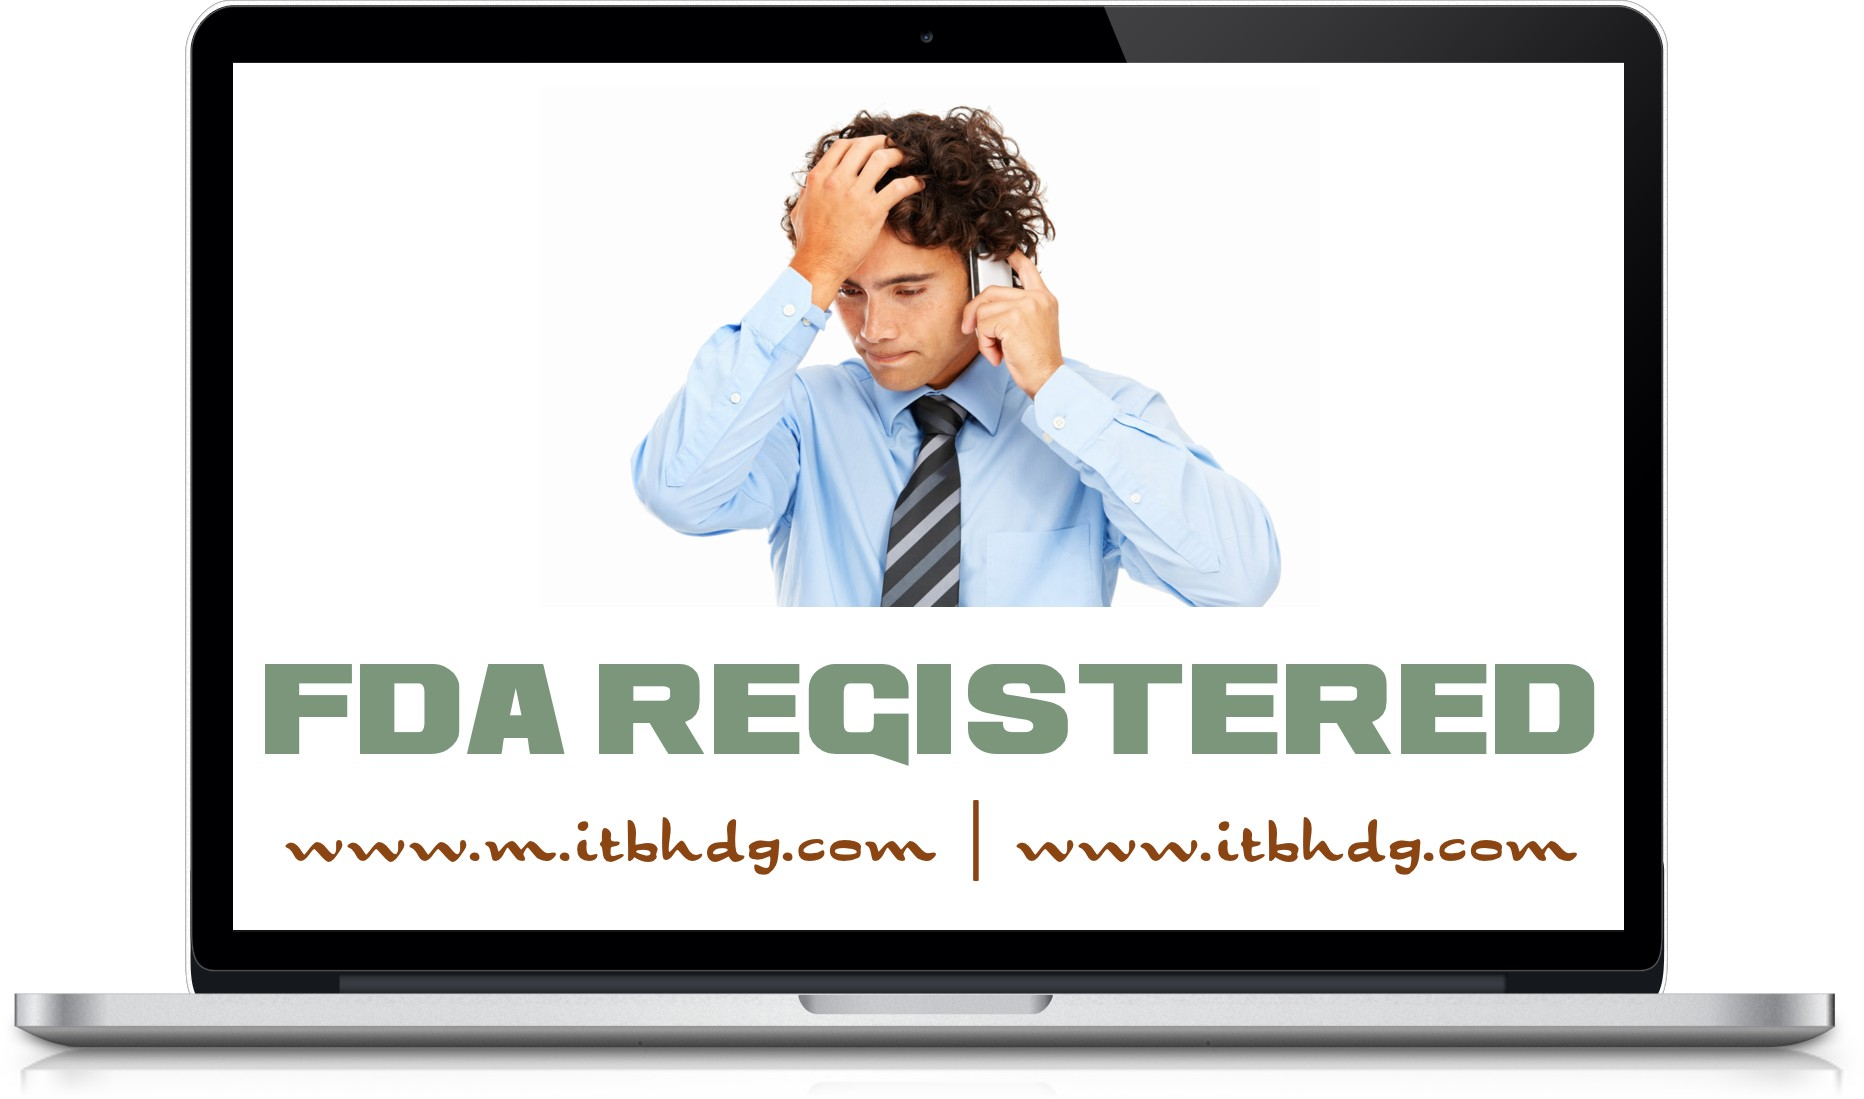 FDA Registration is a legal requirement | Save up to 35% today | www.m.itbhdg.com | www.itbhdg.com